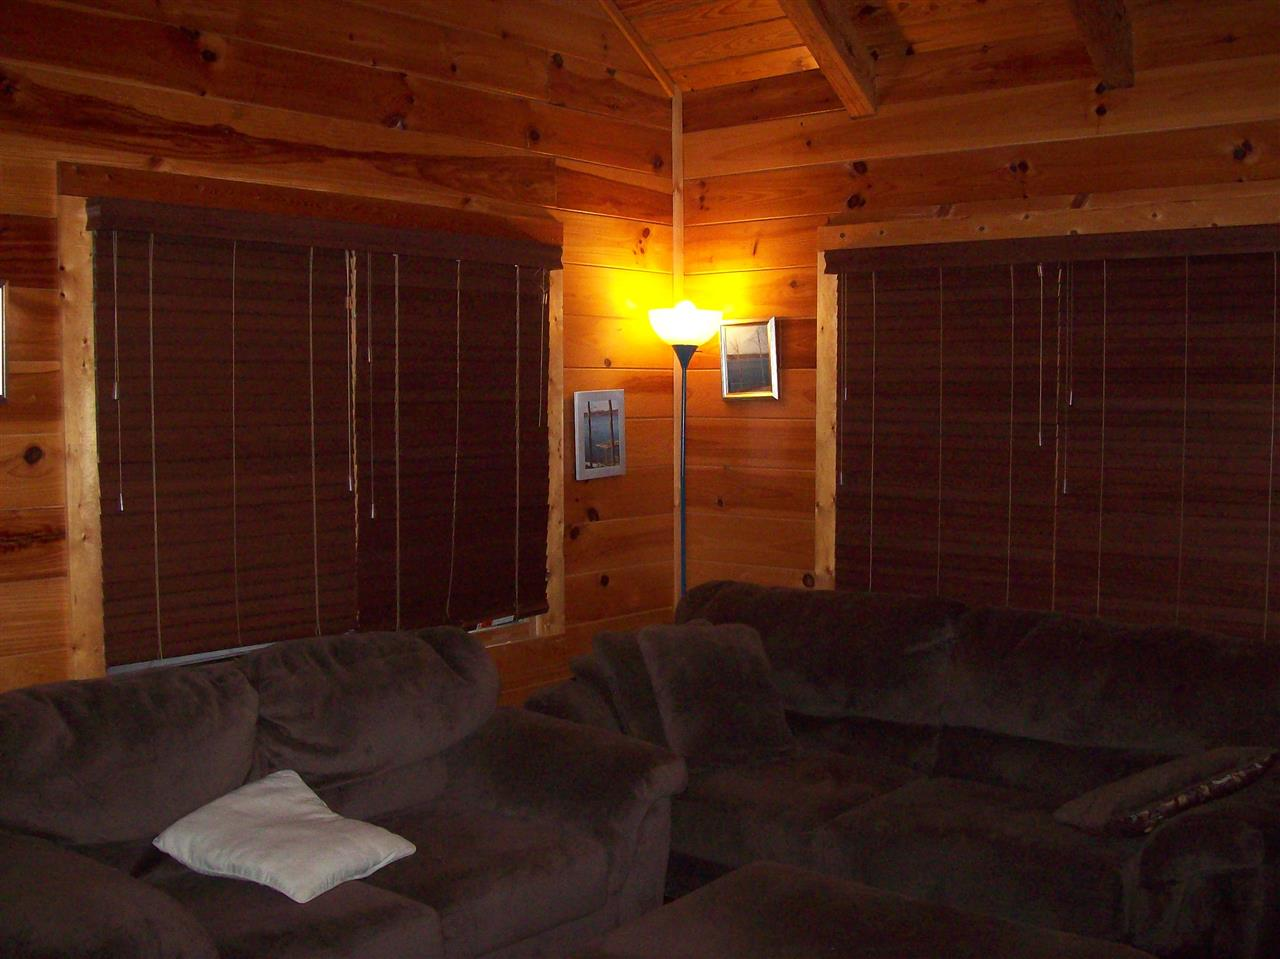 lodging hartwell anderson campgrounds site koa type cabin cabins south rentals lake carolina